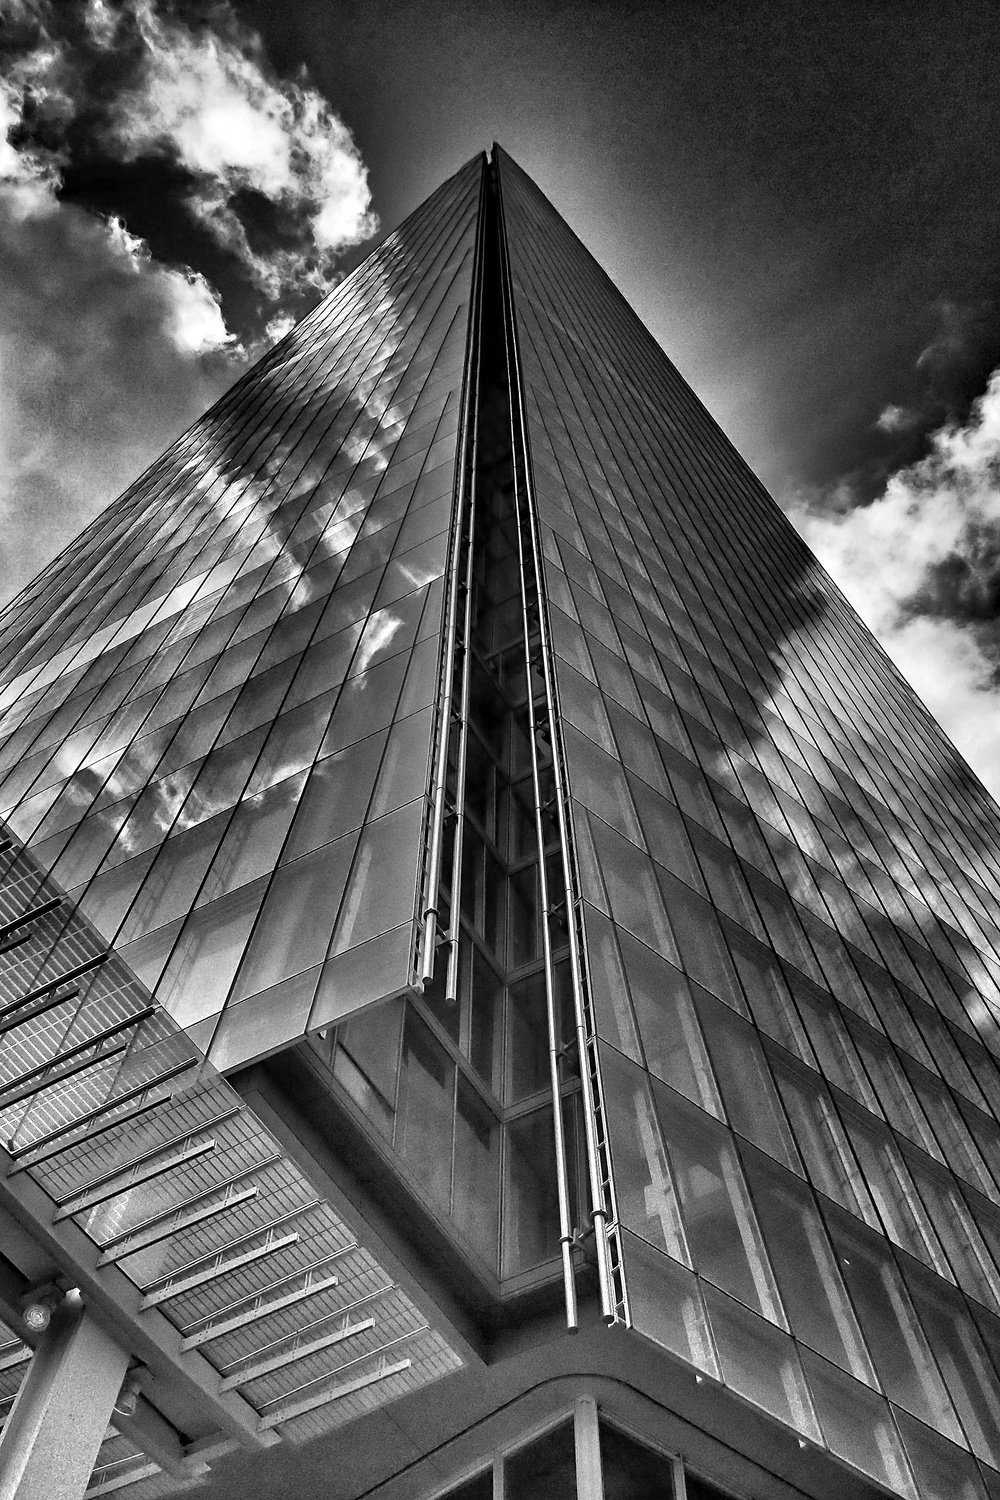 Shard B&W Reflections, EP-3 Lumix 20mmf1.7